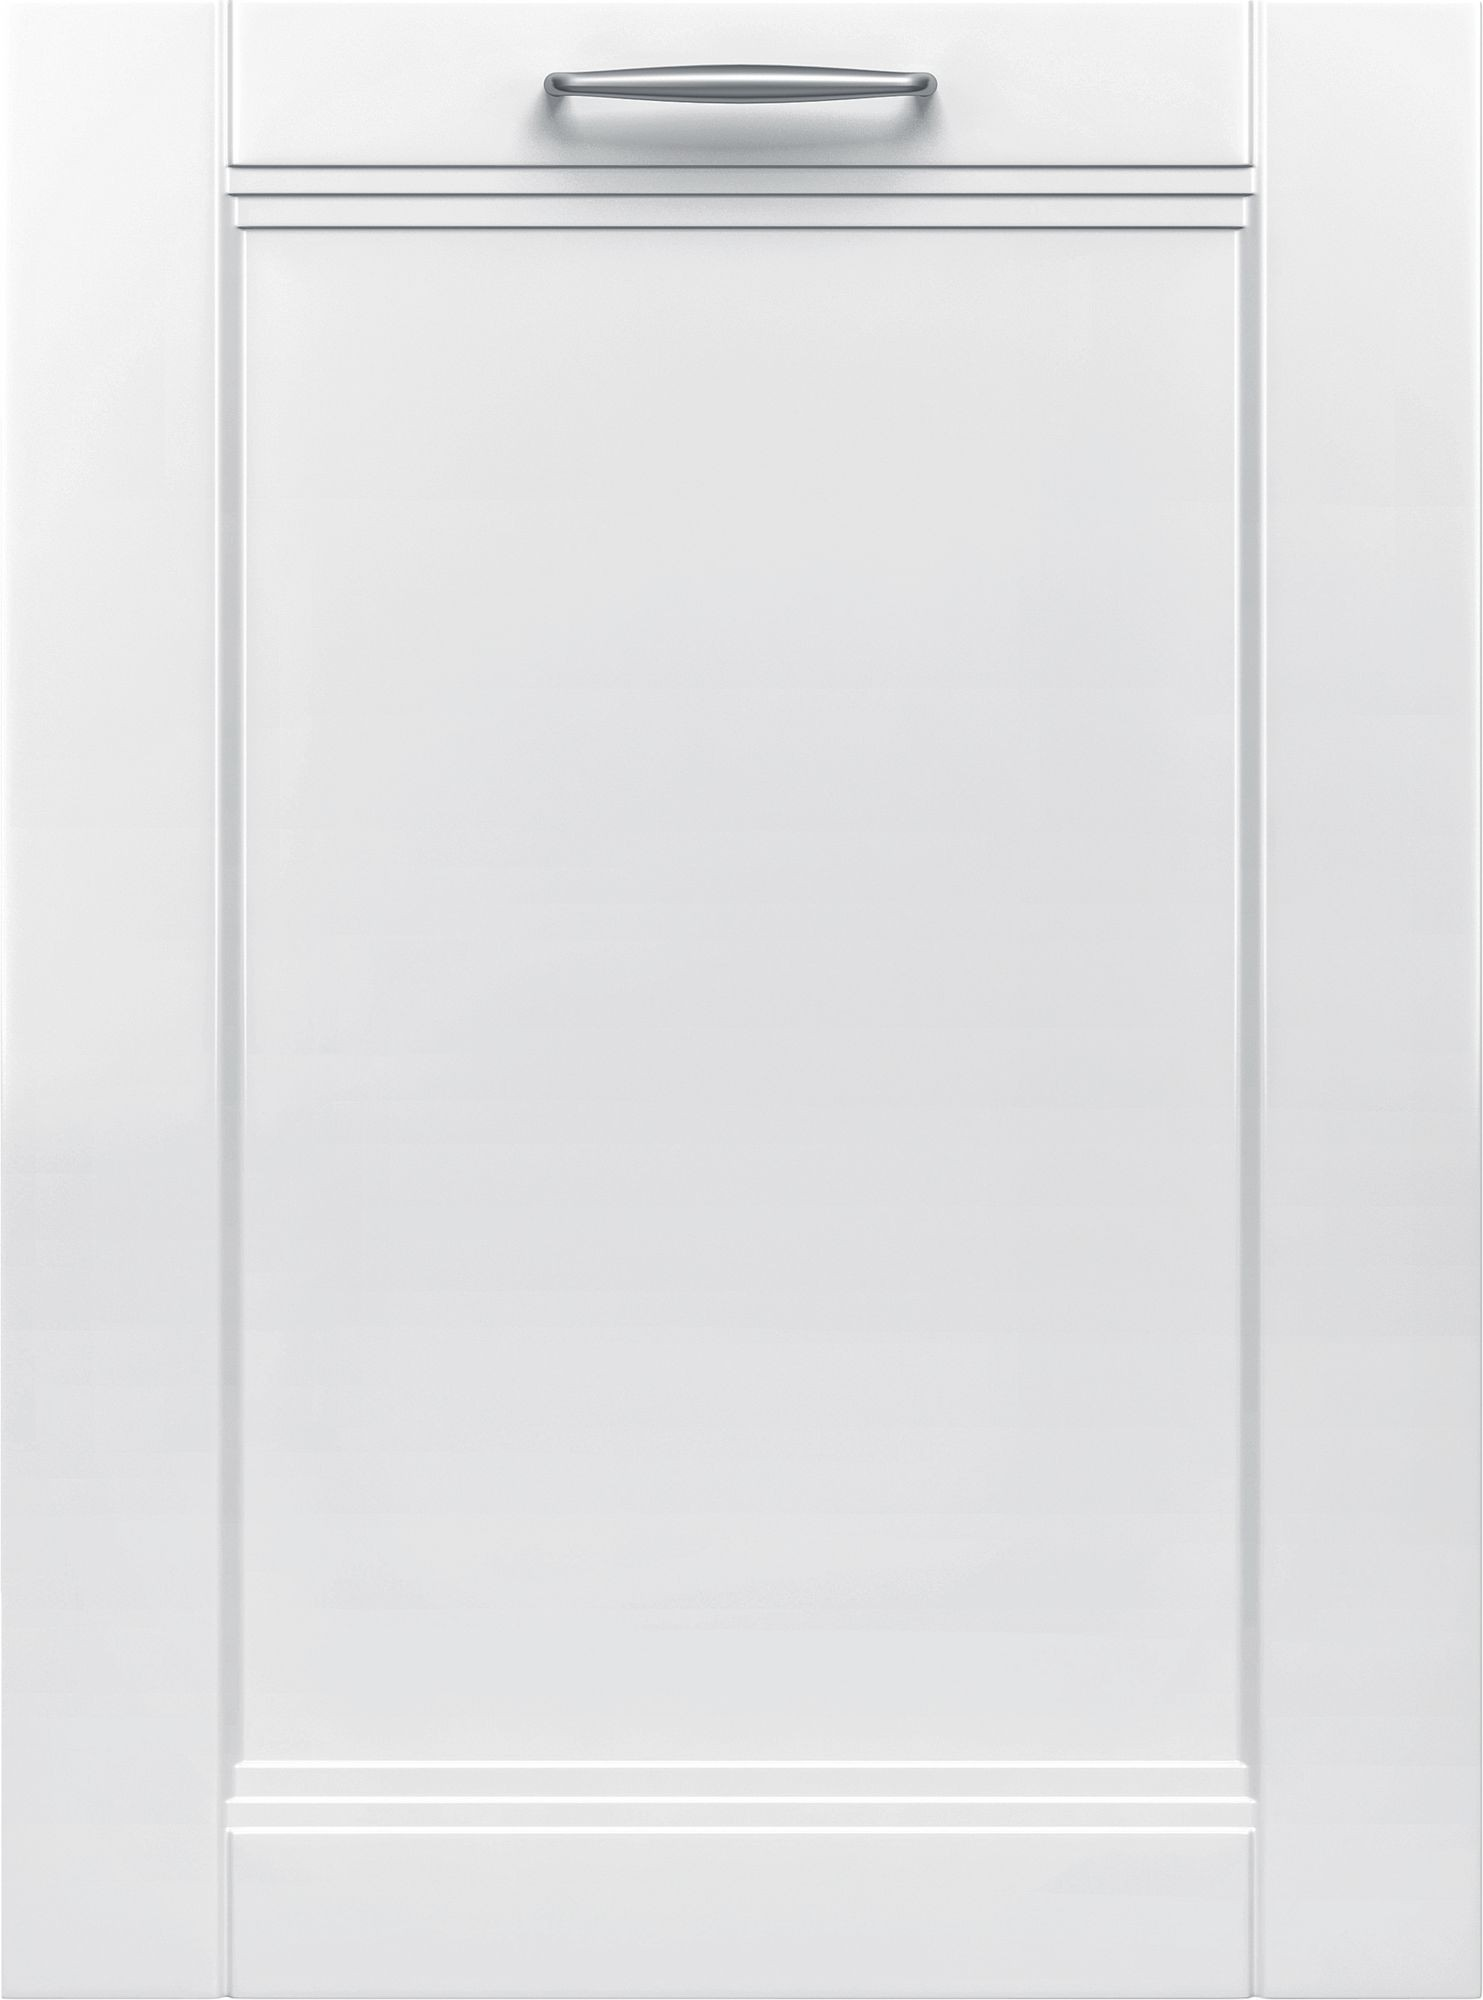 Bosch Shv878zd3n 24 Inch Fully Integrated Panel Ready Dishwasher With 16 Place Settings 6 Wash Cycles 42 Dba Sound Level 3rd Rack Touch Controls Easyglide Racks Flexspace Led Display Load Size Sensor